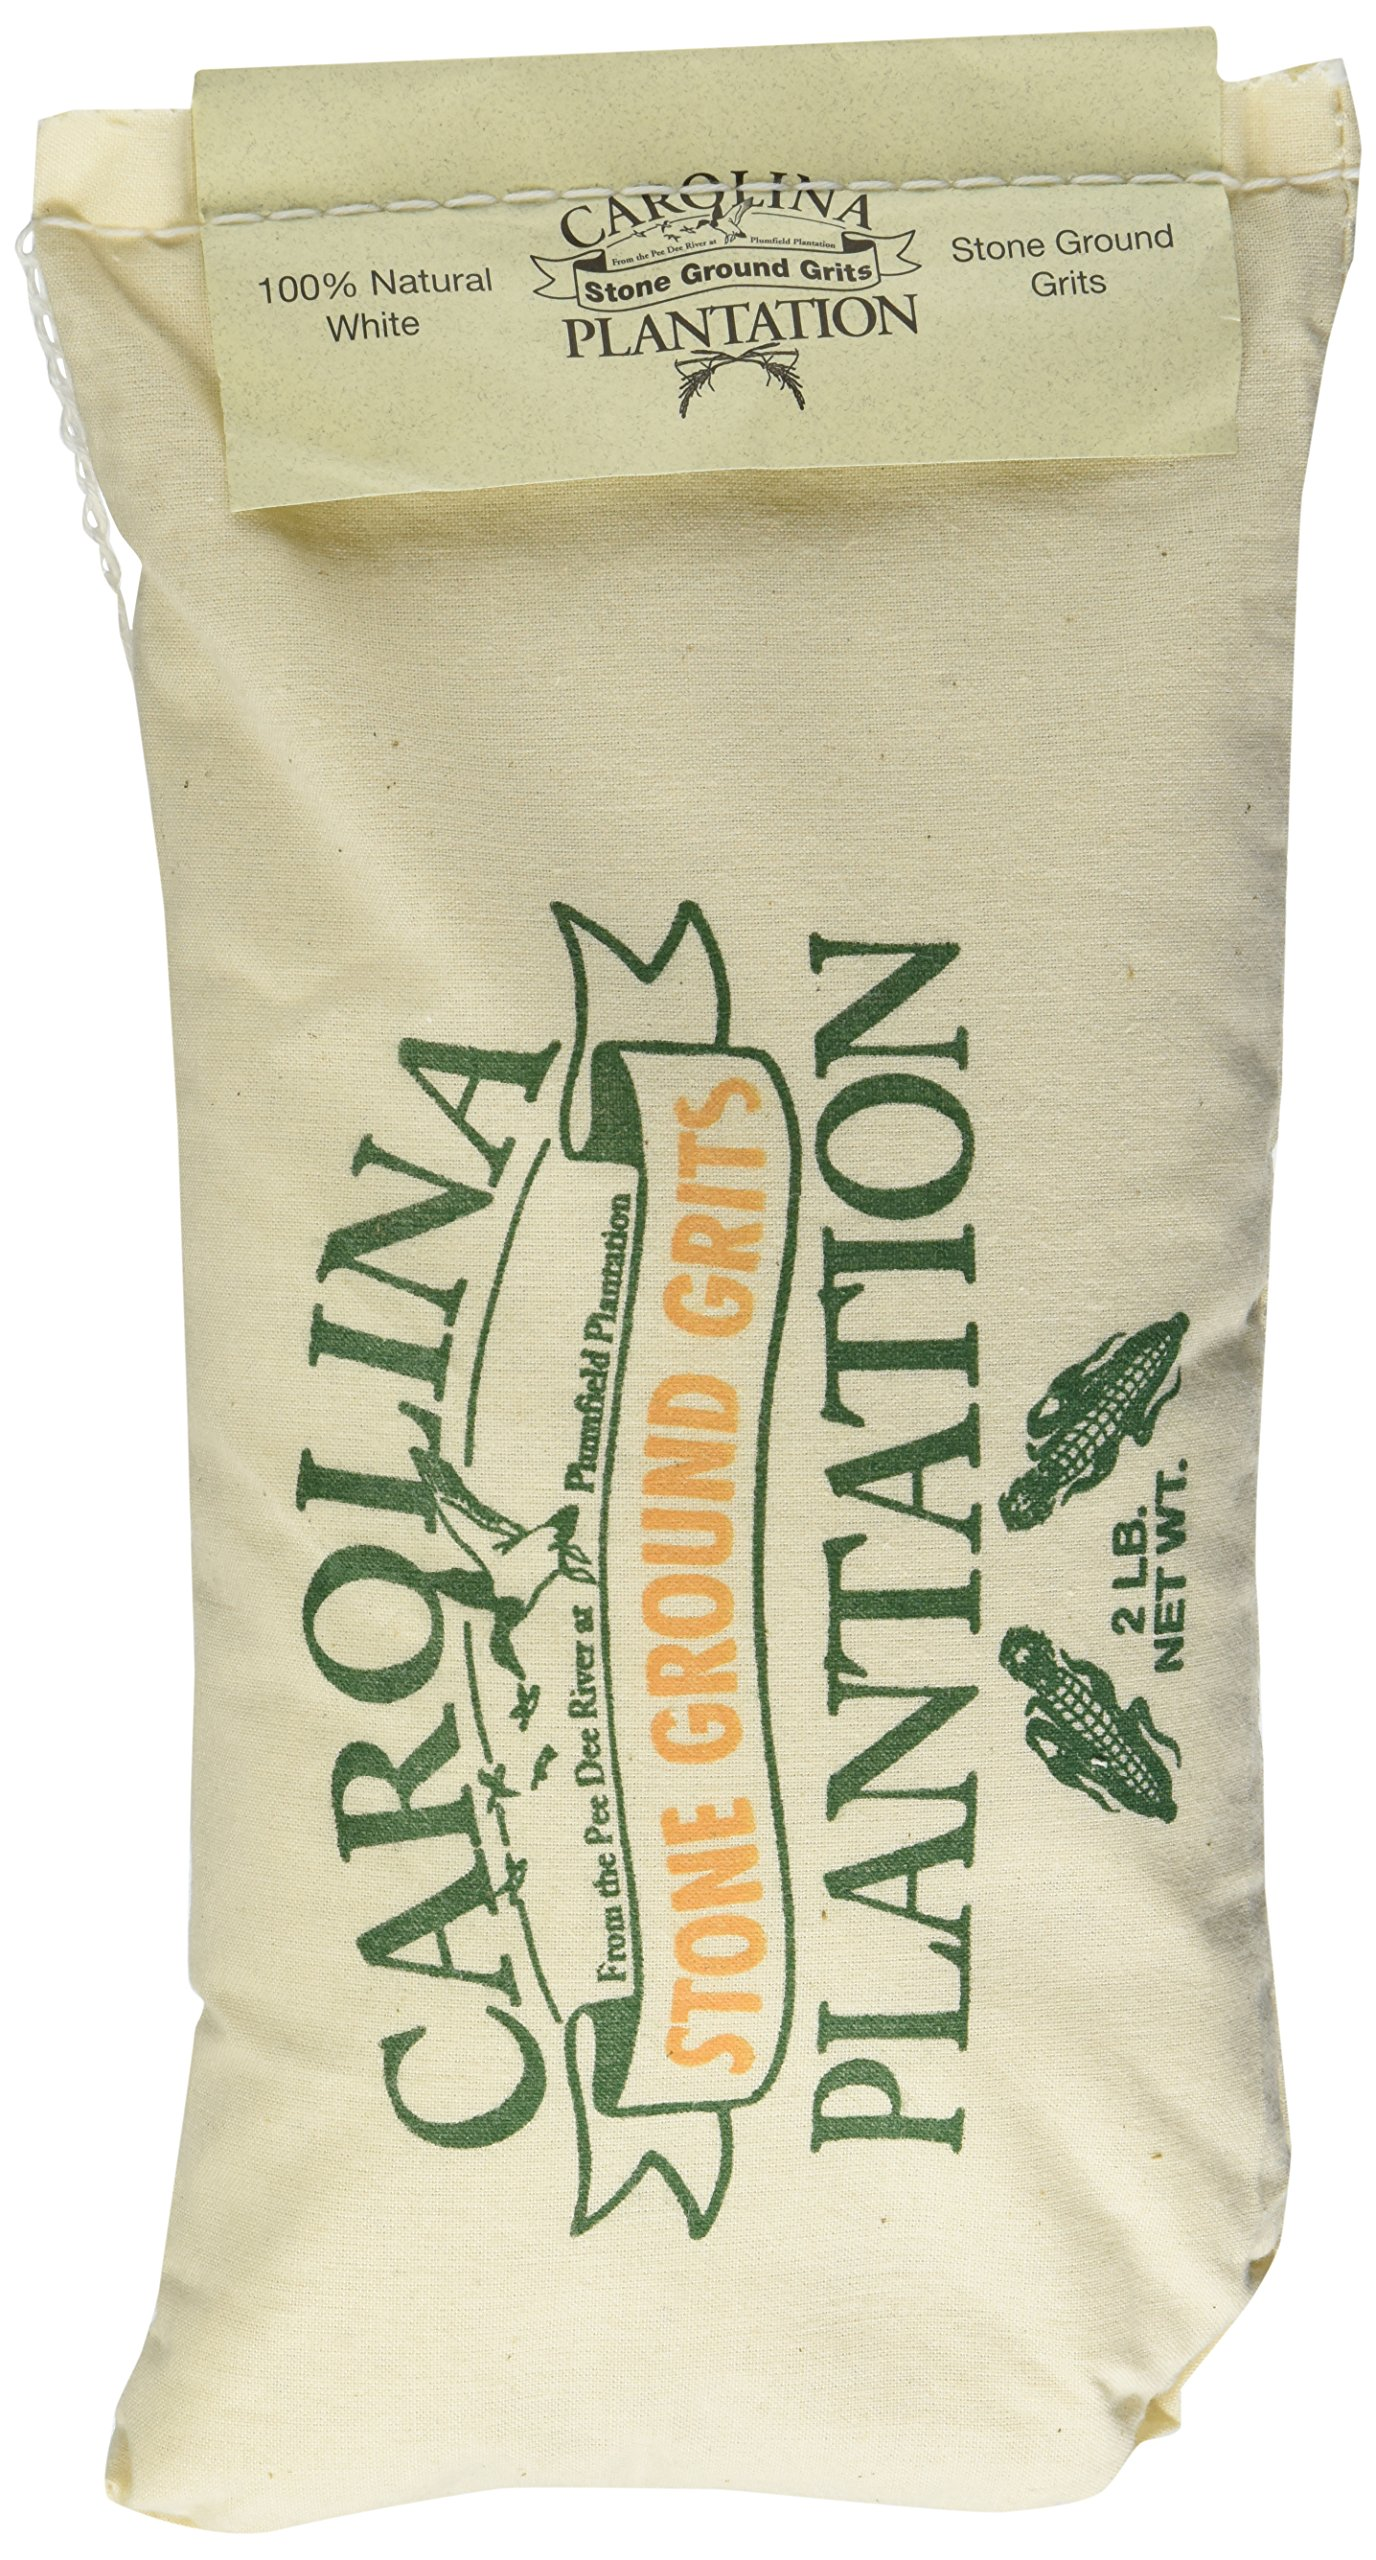 Carolina Plantation Stone Ground White Grits- 2 lb Bag